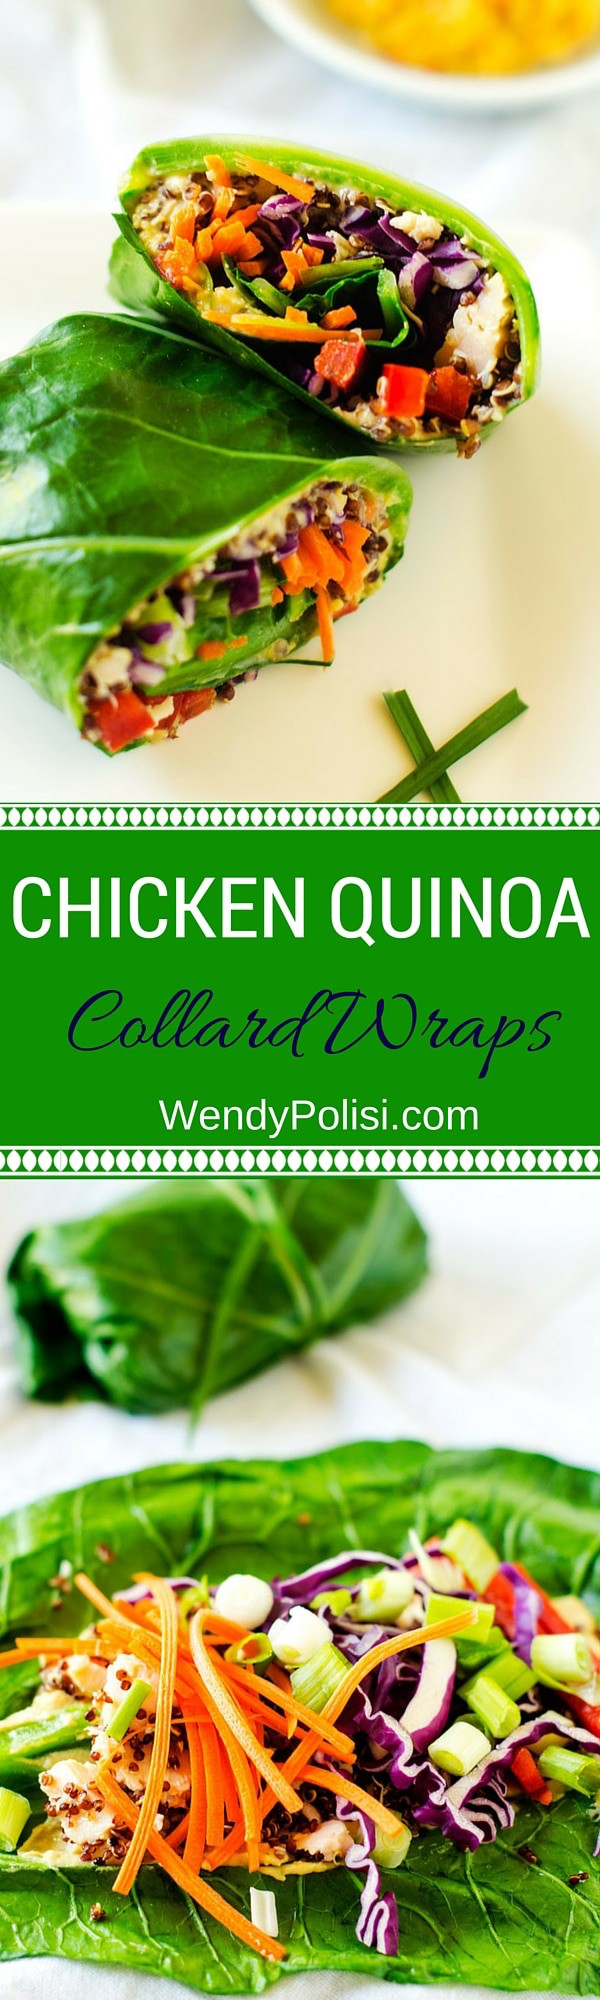 Chicken Quinoa Collard Wraps - WendyPolisi.com